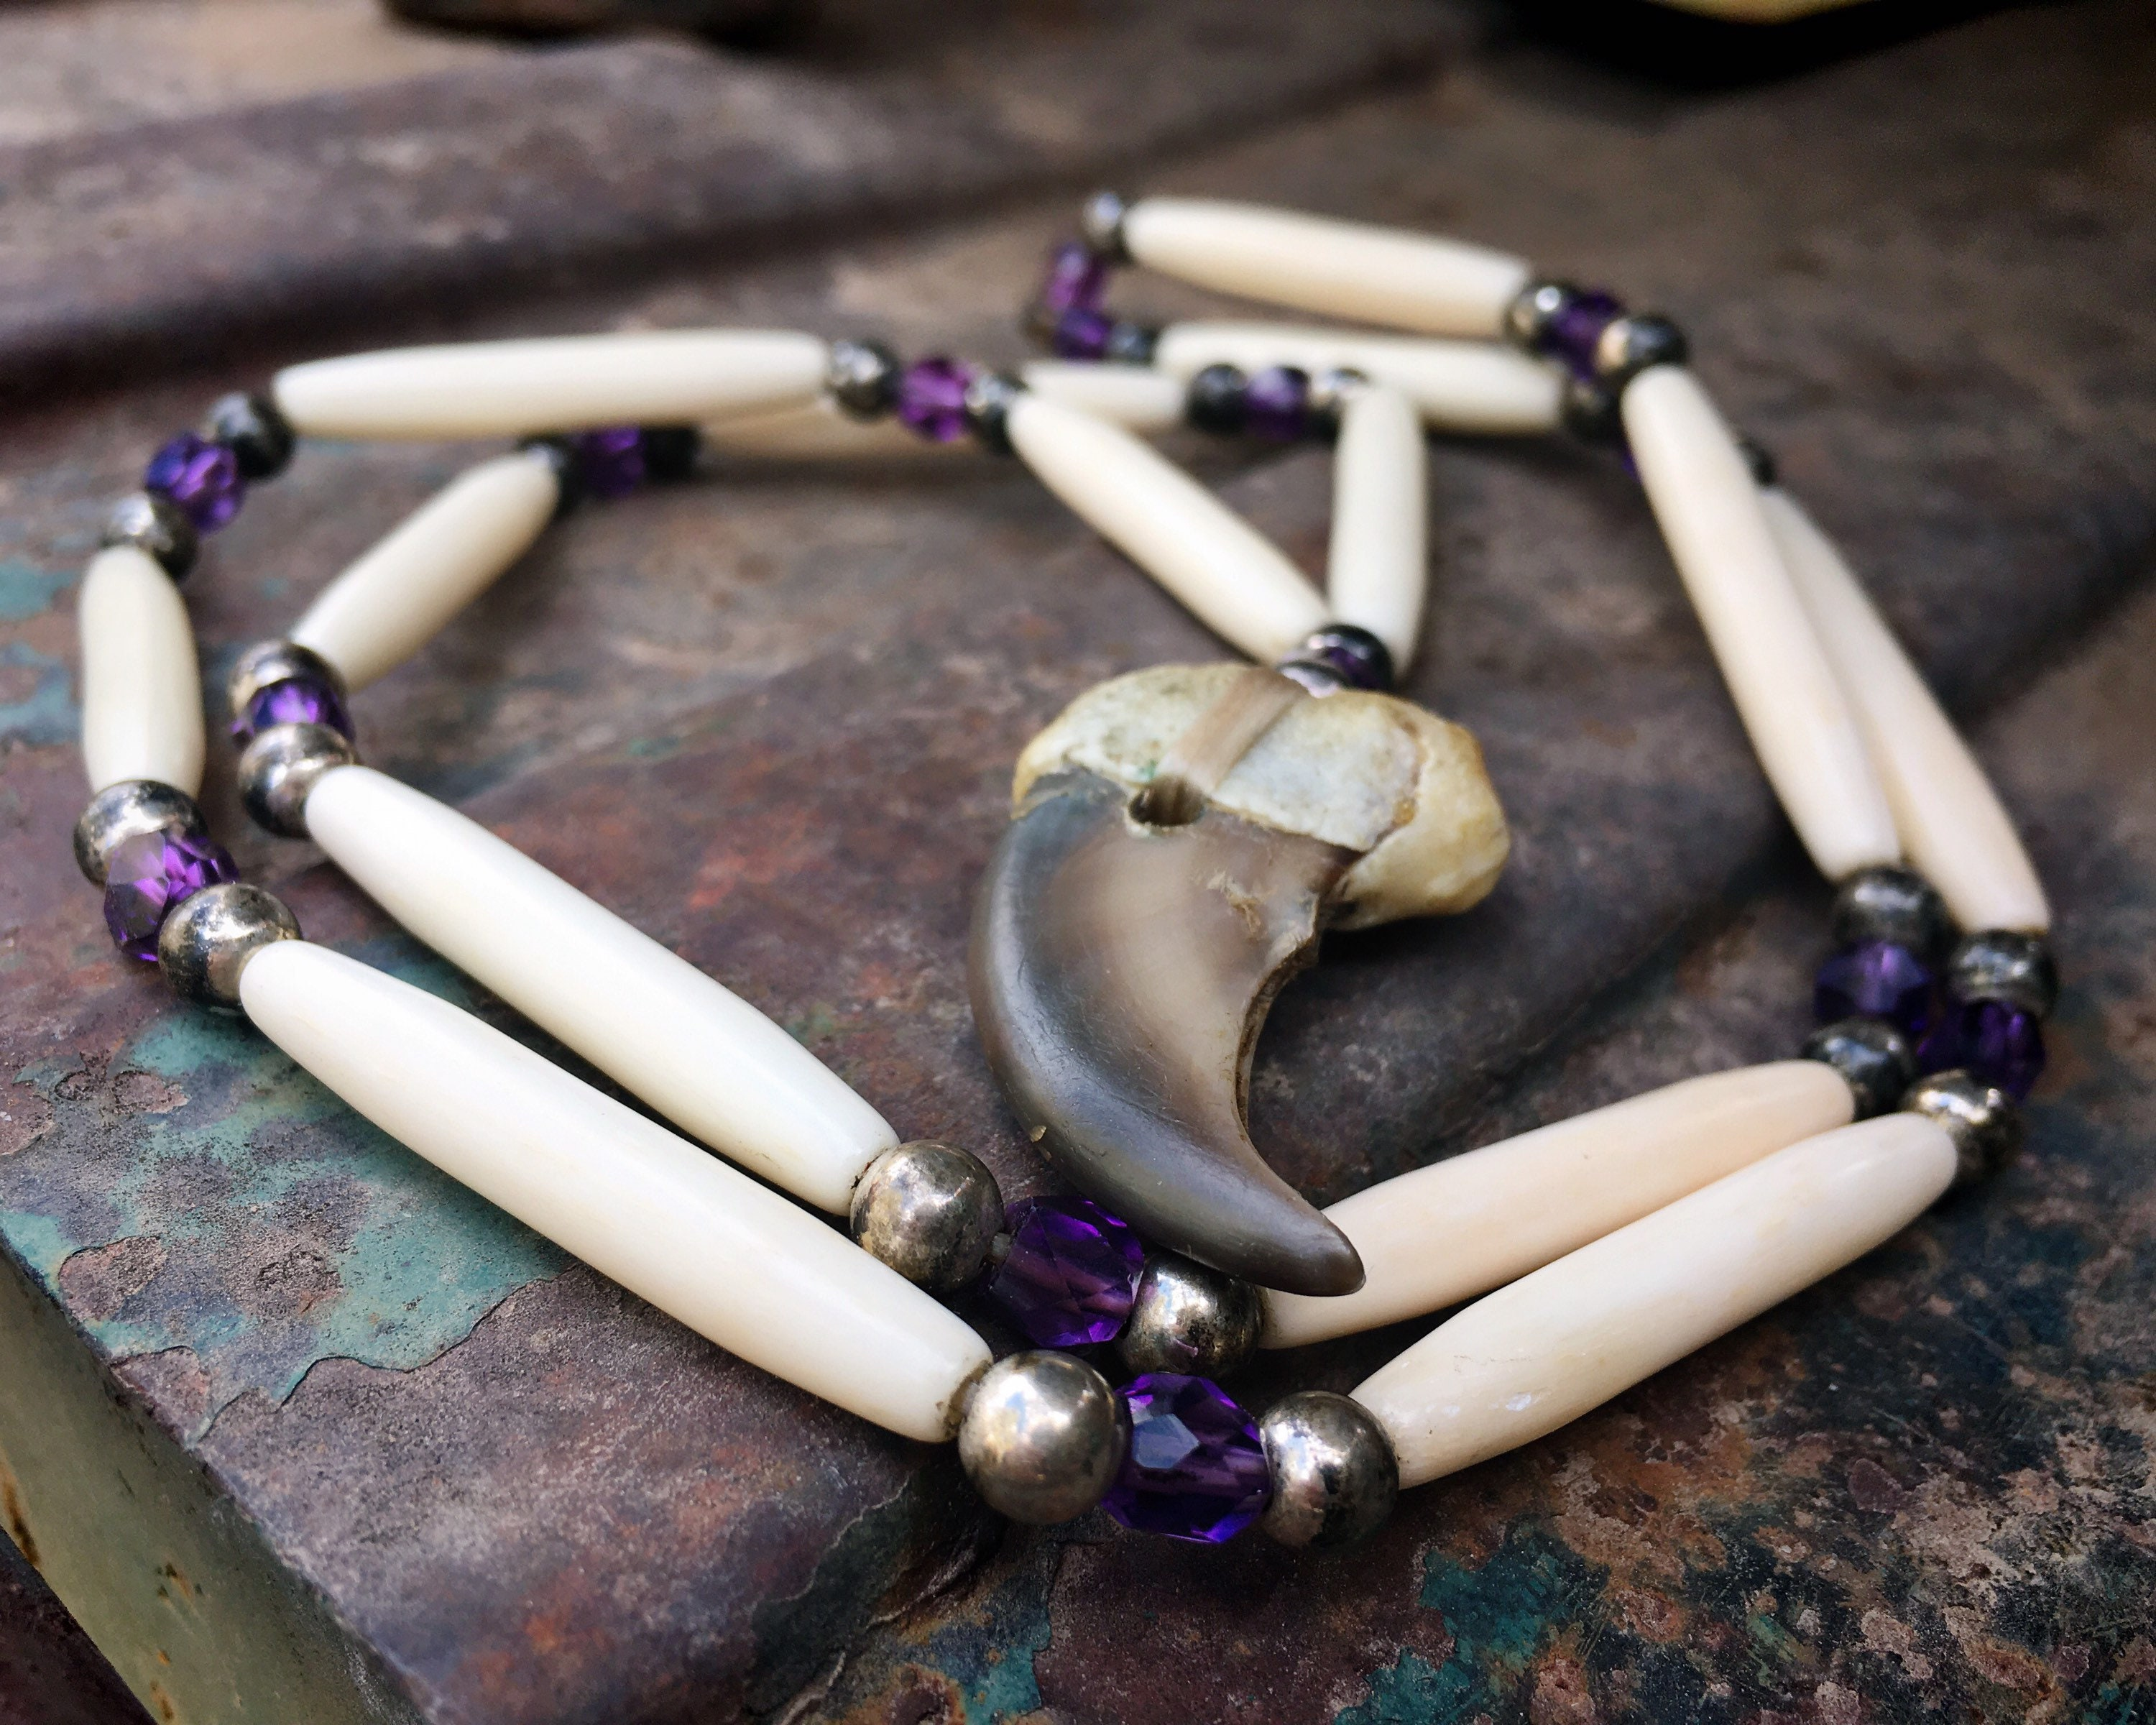 Vintage Bear Claw Necklace With Trade Beads Strung On Sinew Native American Indian Jewelry Unisex